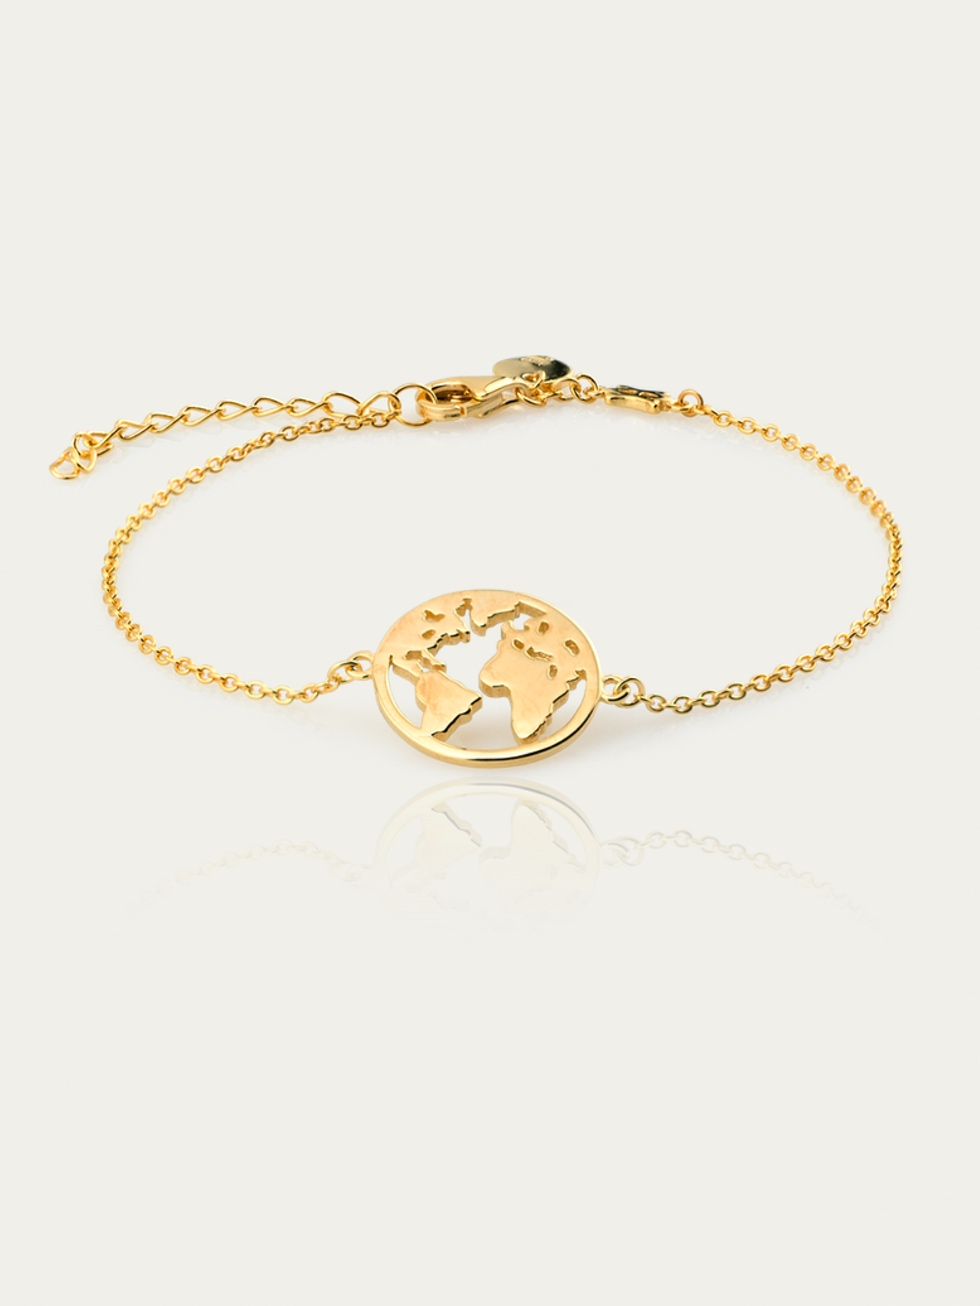 World bracelet gold2